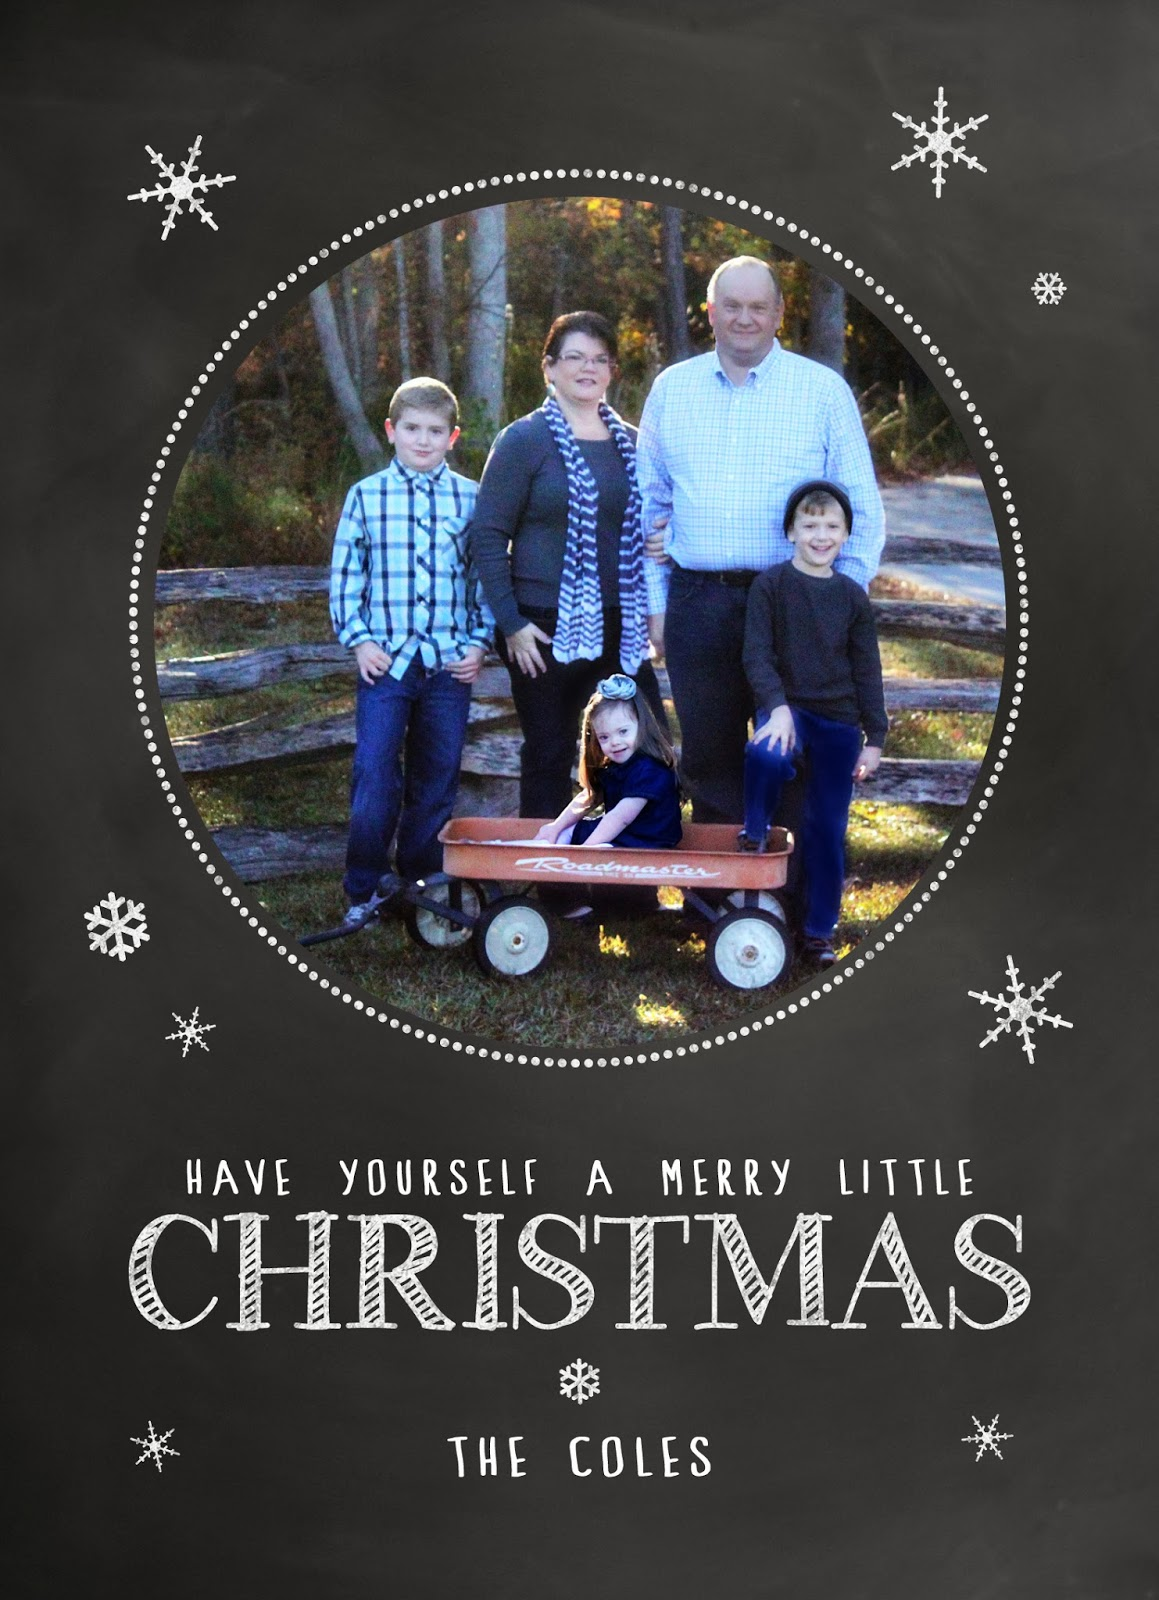 3 little Miracles: Christmas Card Carousel